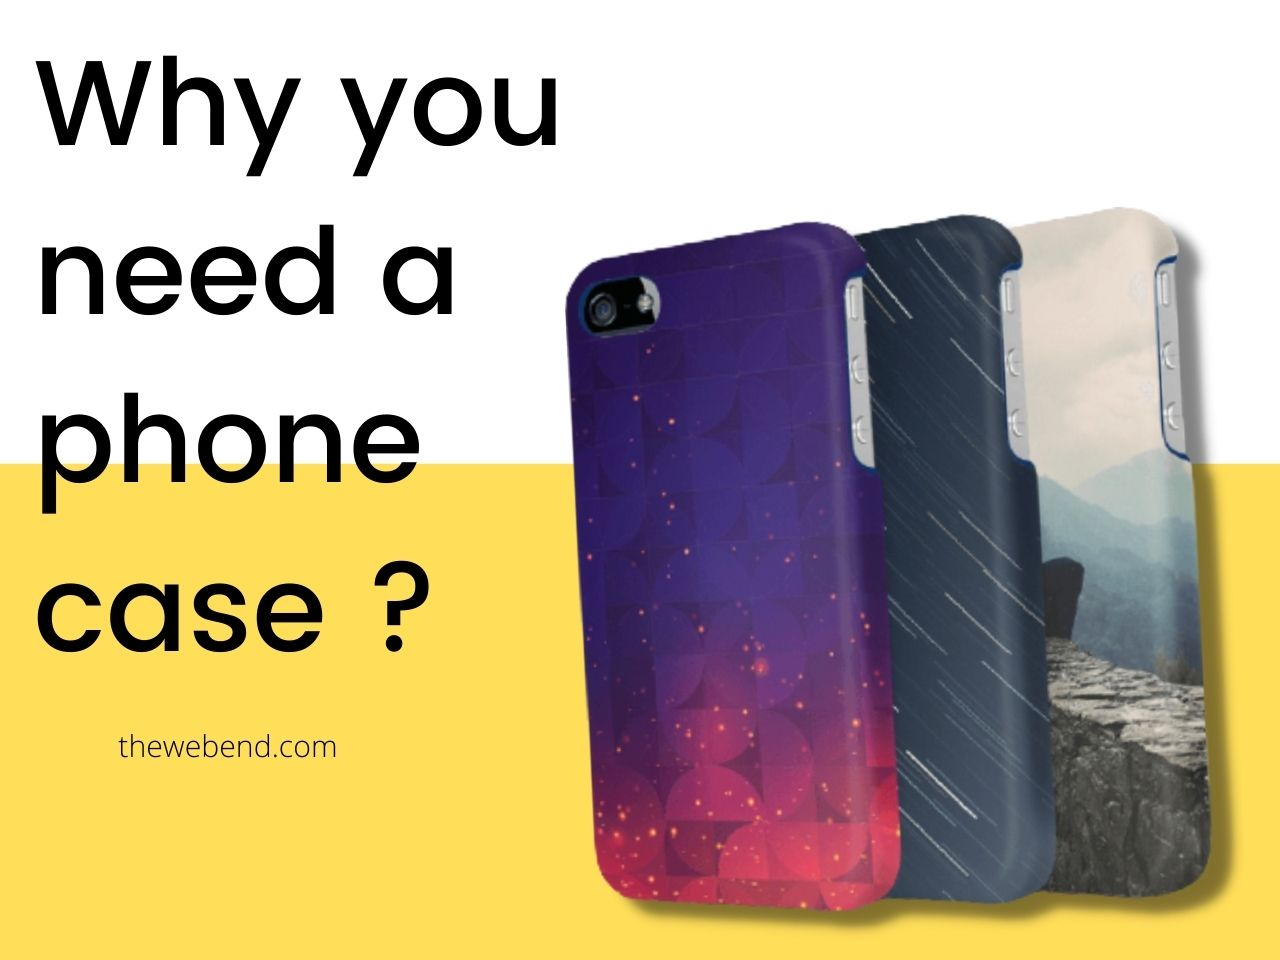 why you need a phone case